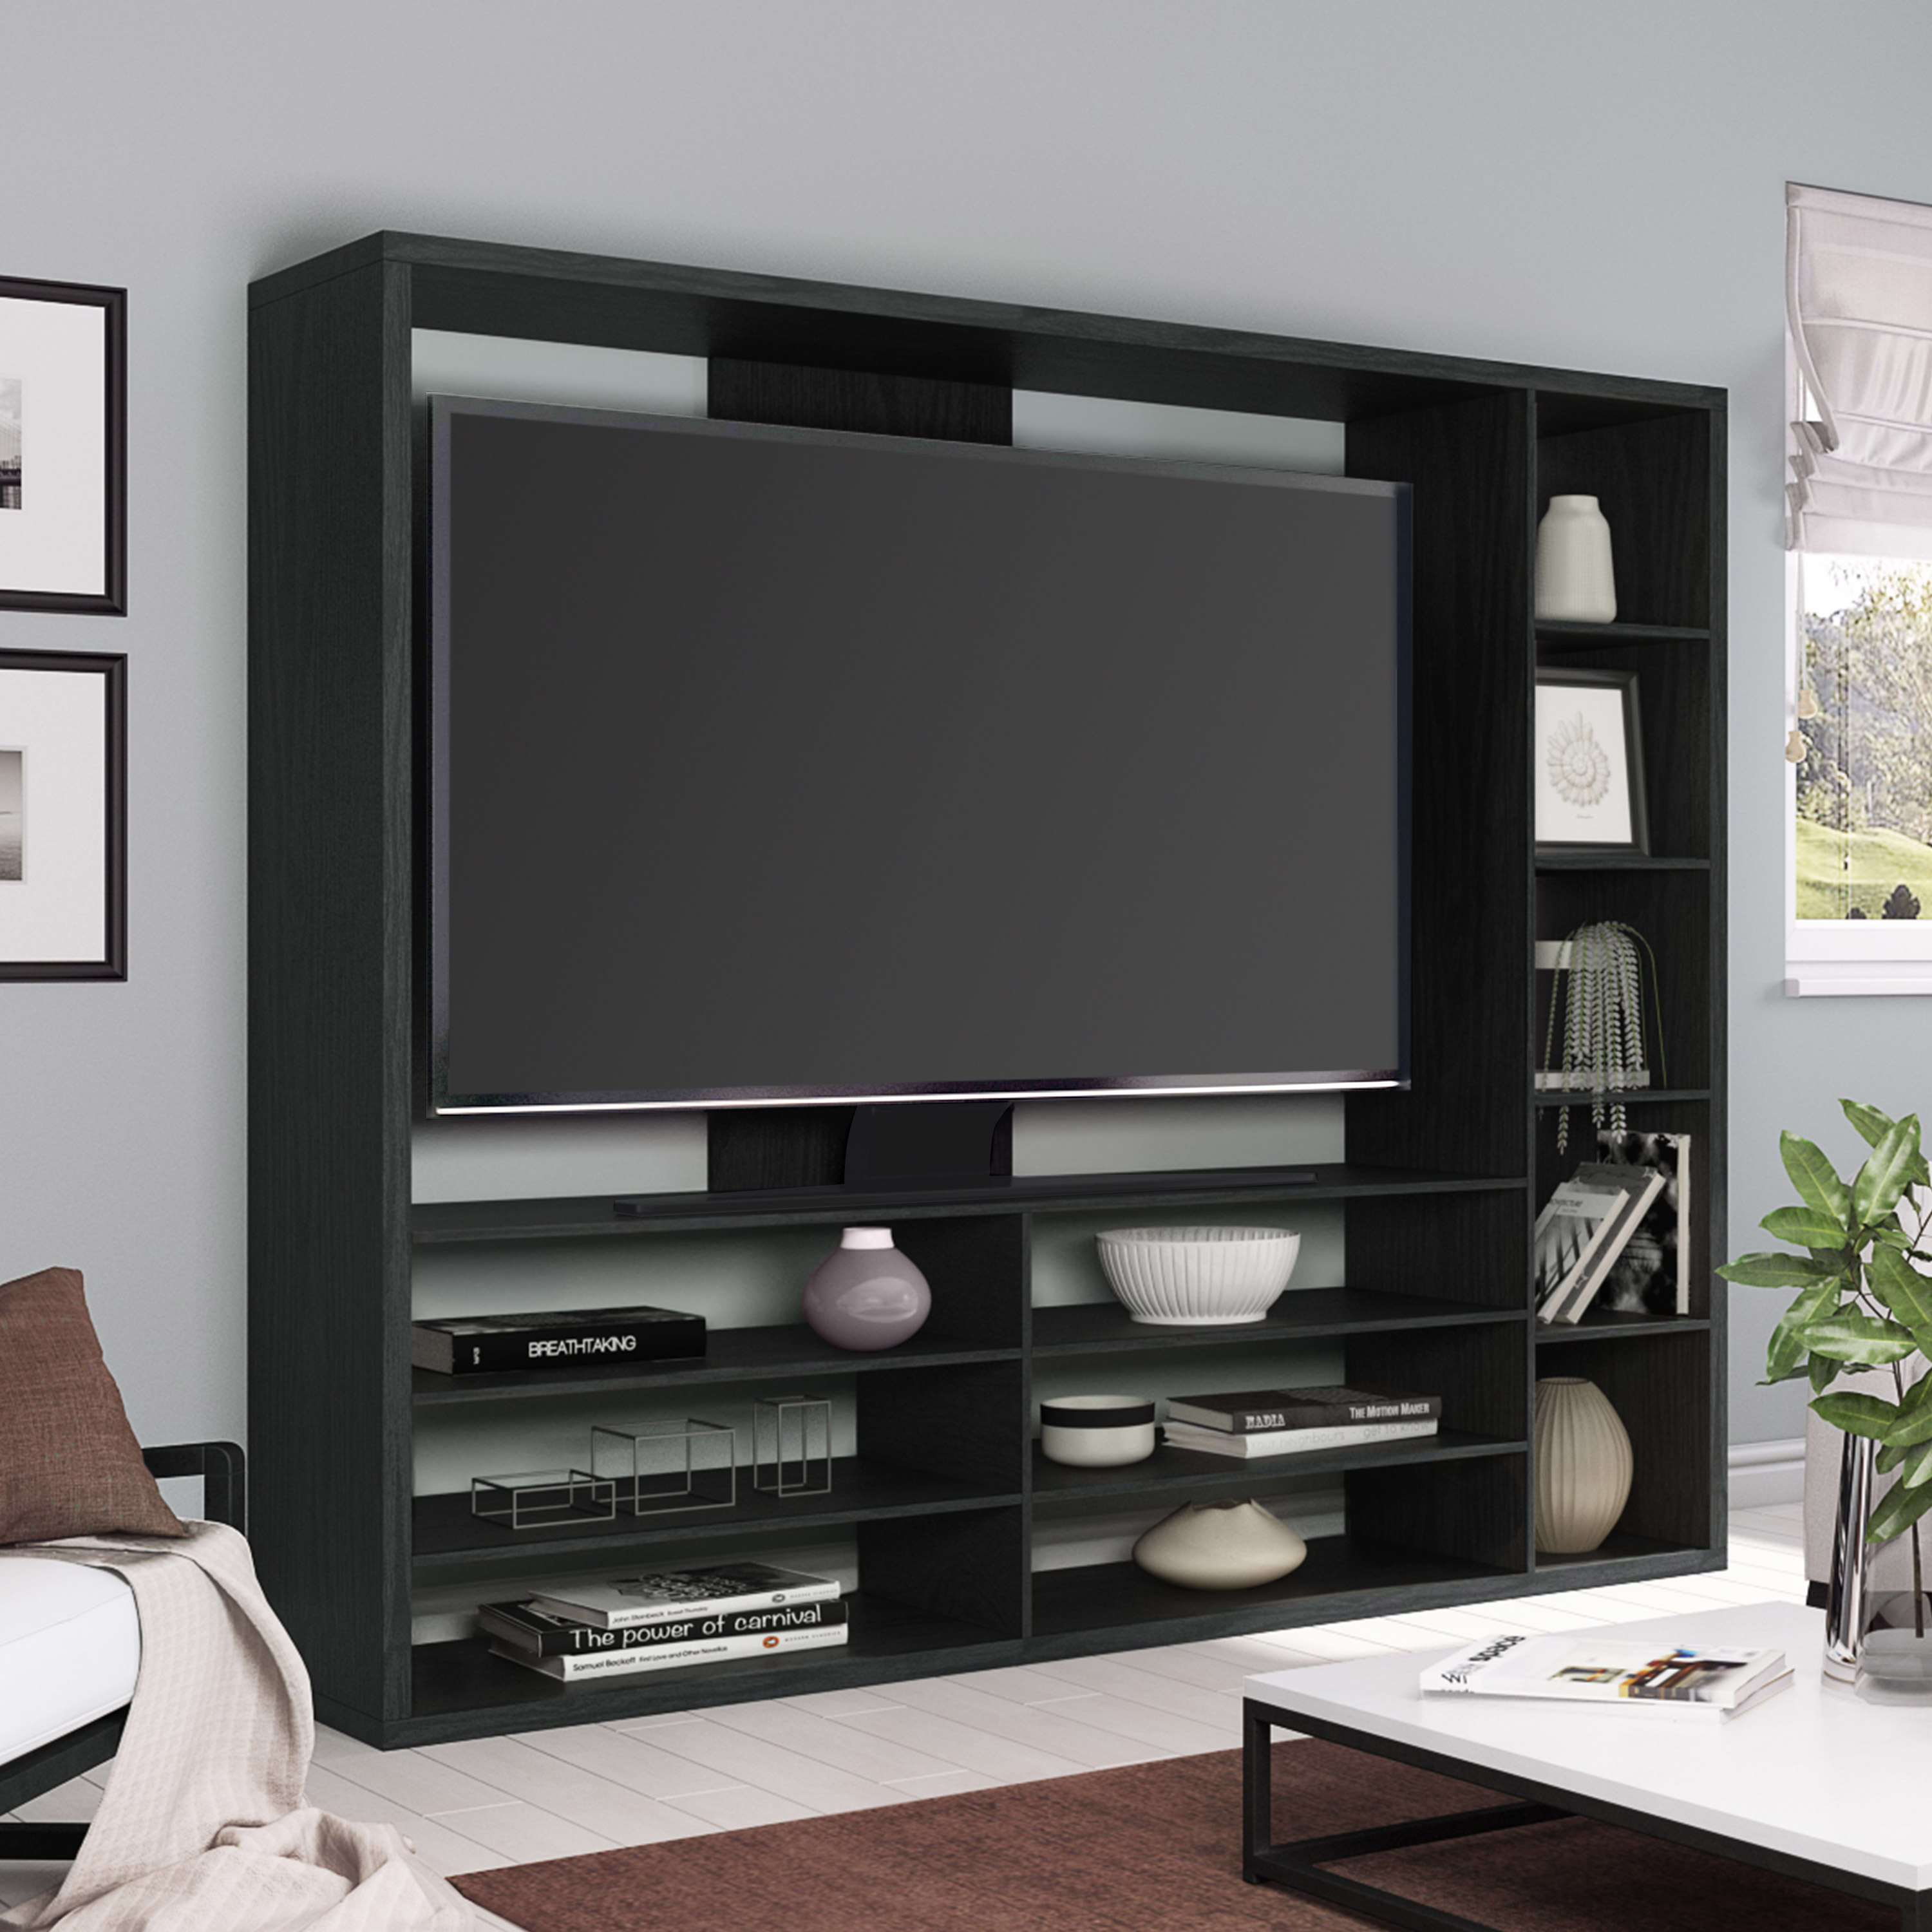 mainstays entertainment center for tvs up to 55 ideal tv stand for flat screens multiple finishes